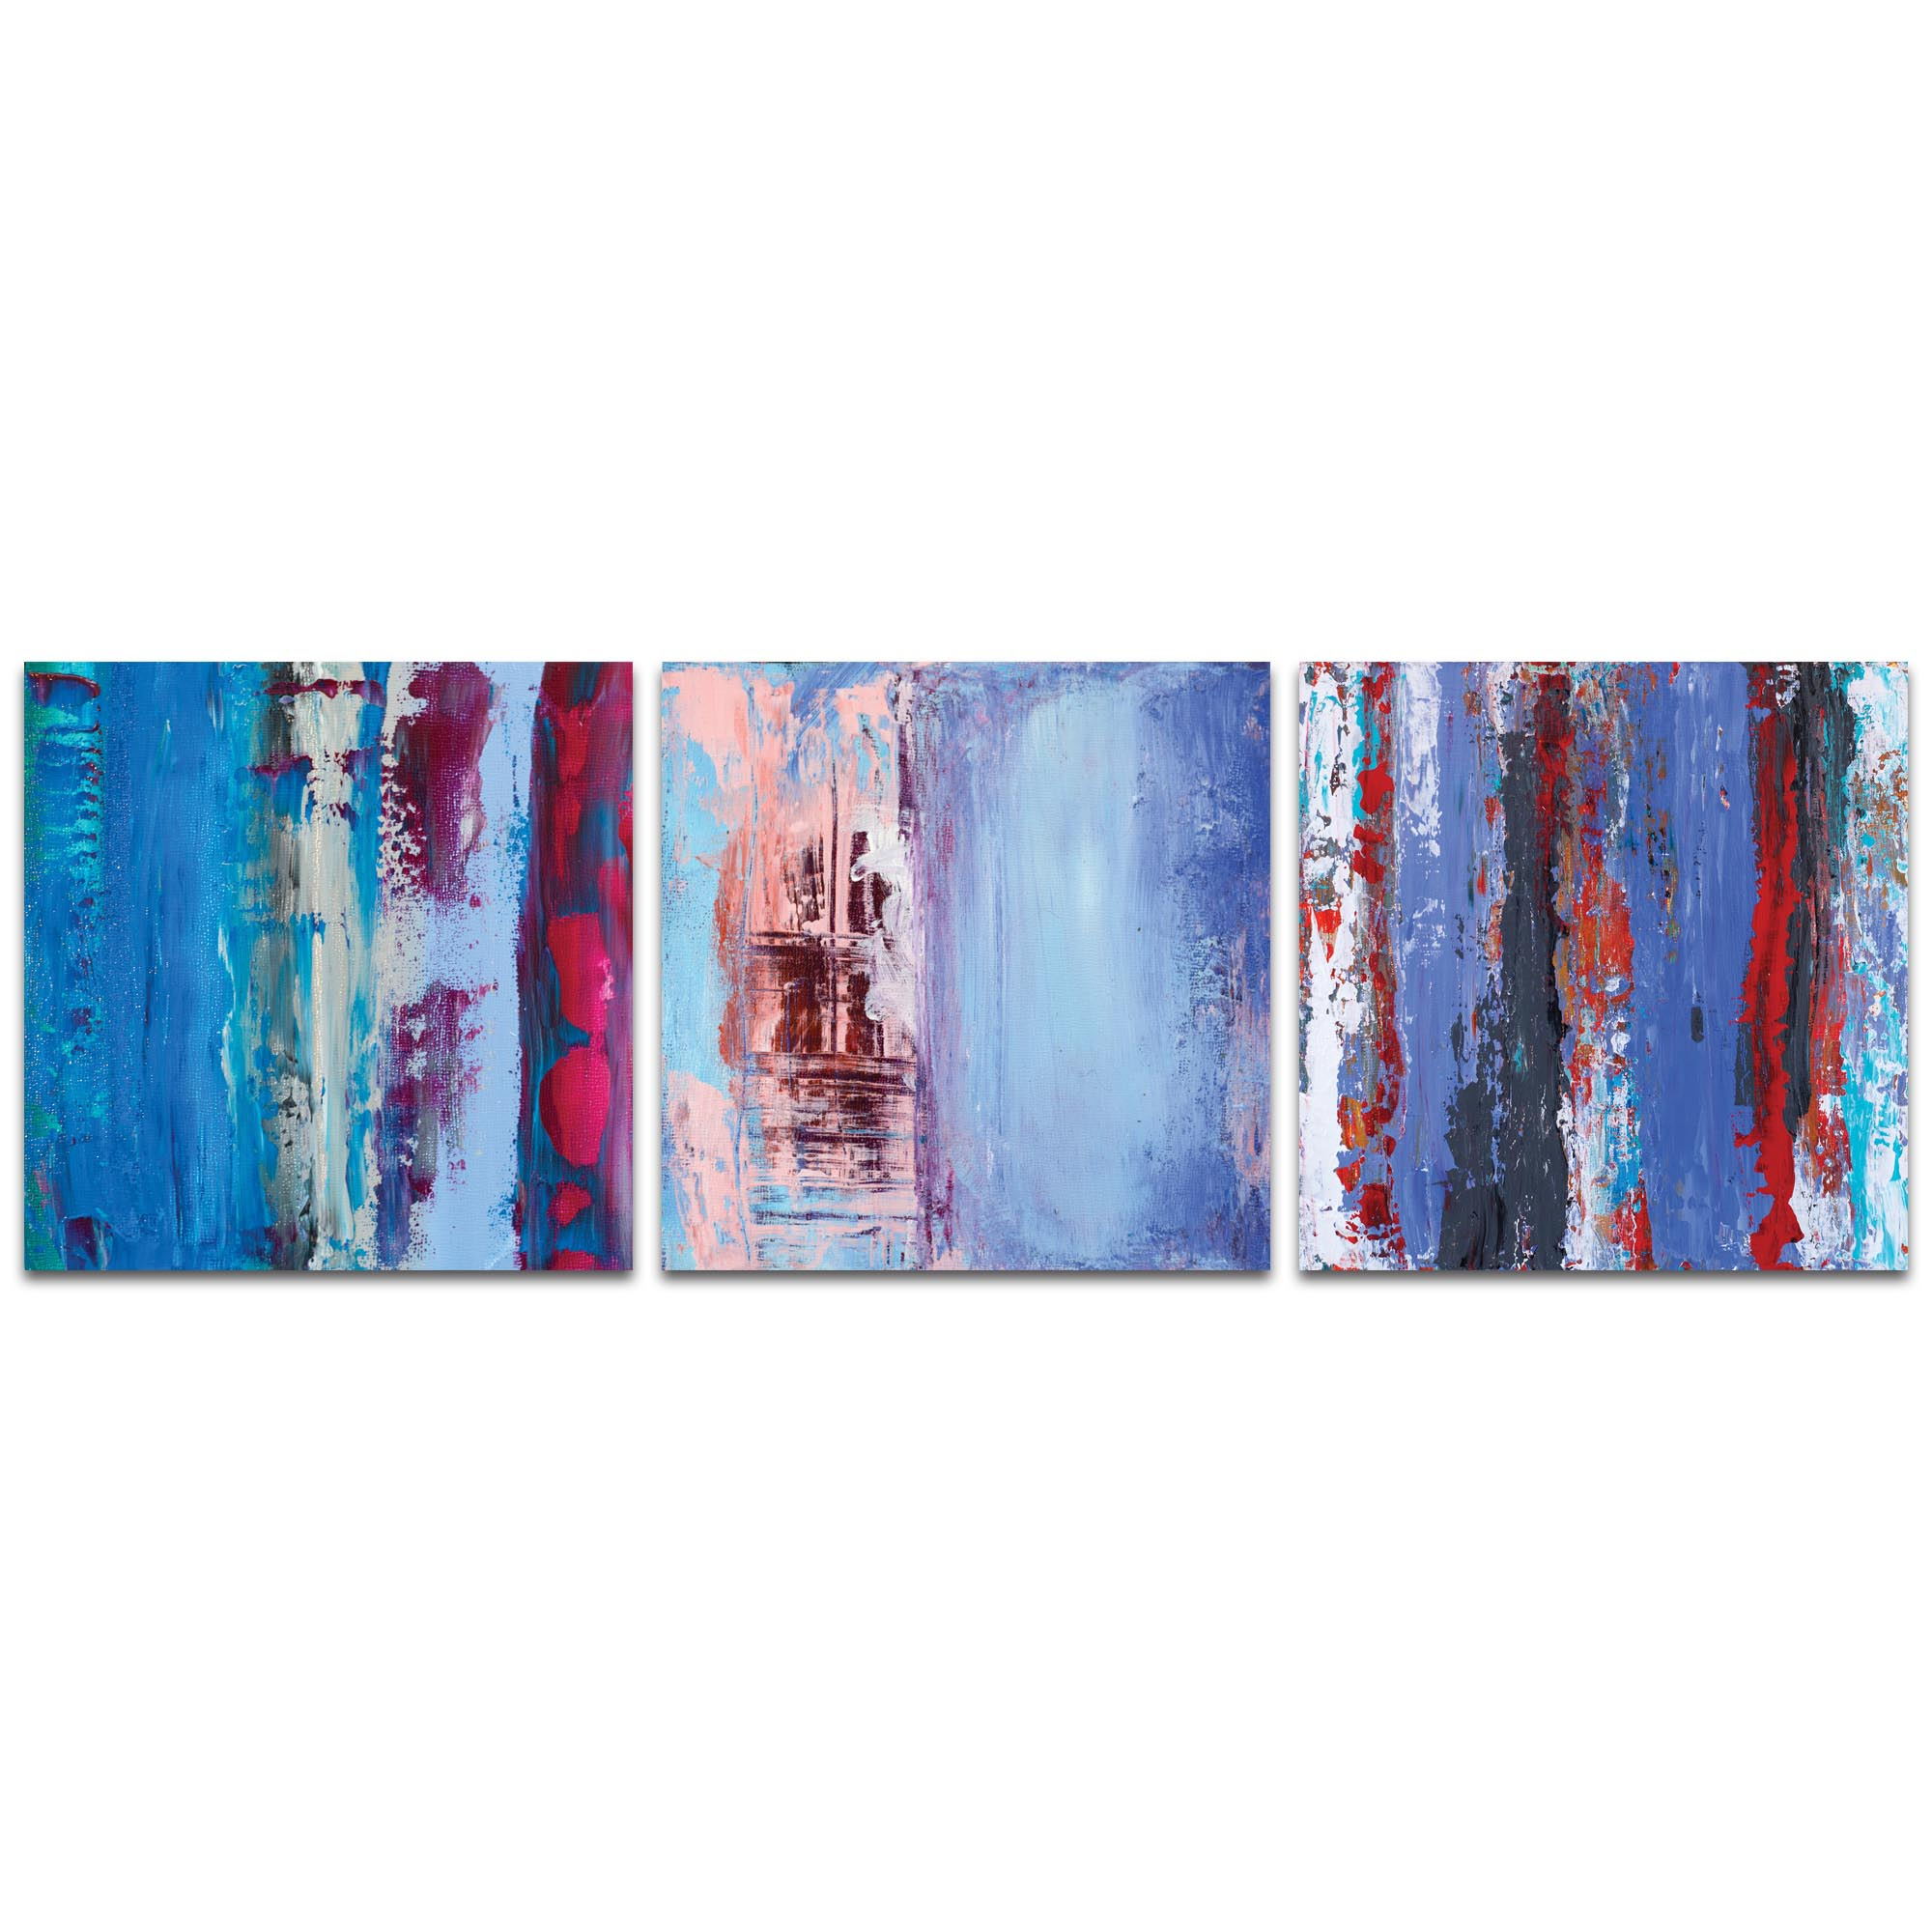 Abstract Wall Art 'Urban Triptych 1 Large' - Urban Decor on Metal or Plexiglass